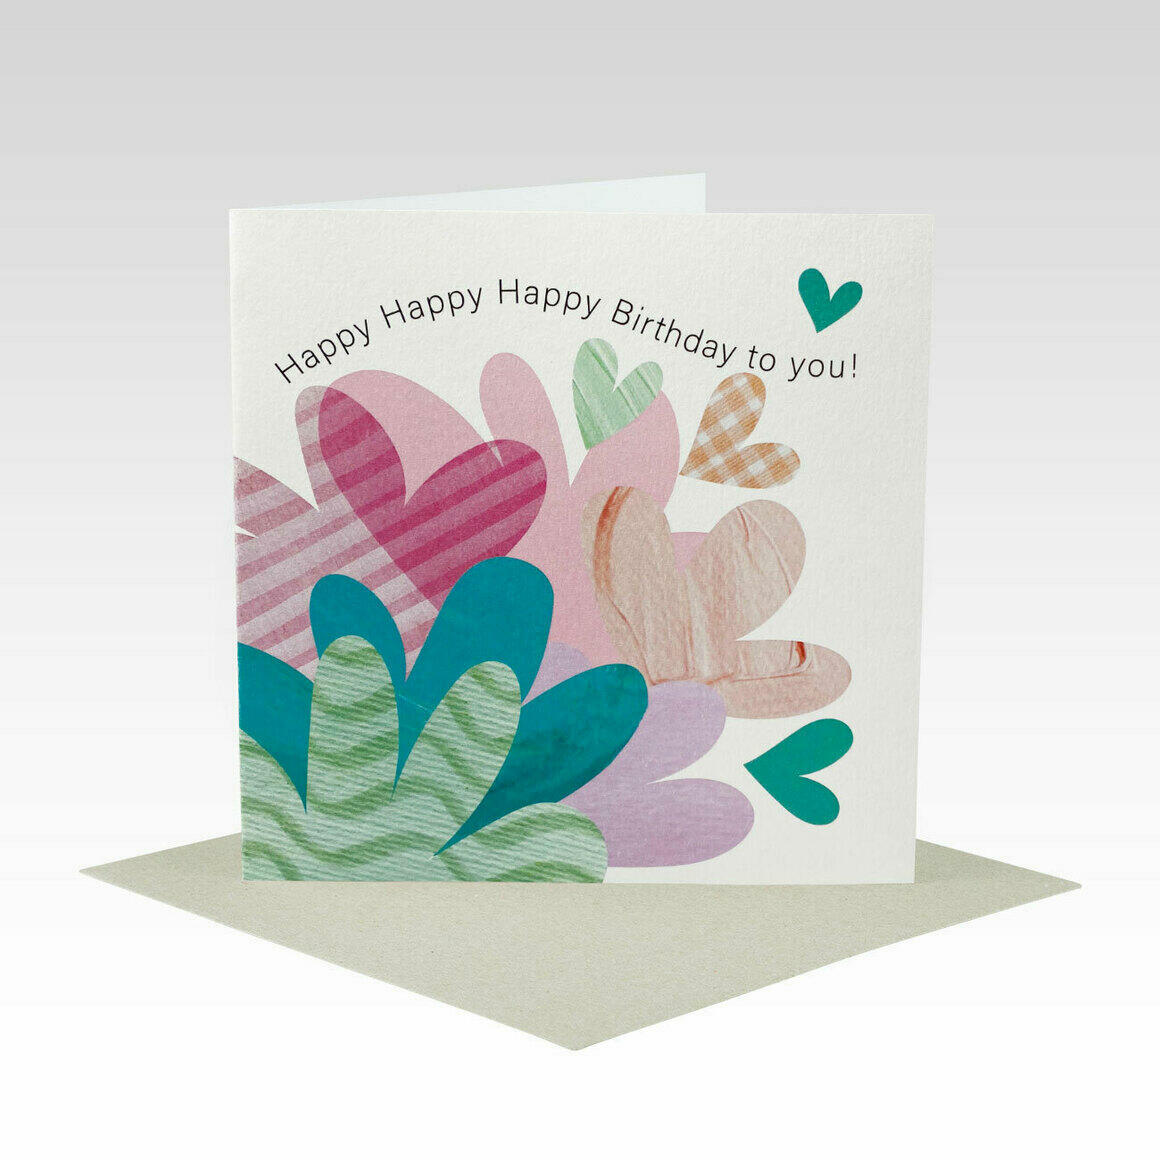 HB085 – Quirky Flowers Birthday Card   Trada Marketplace